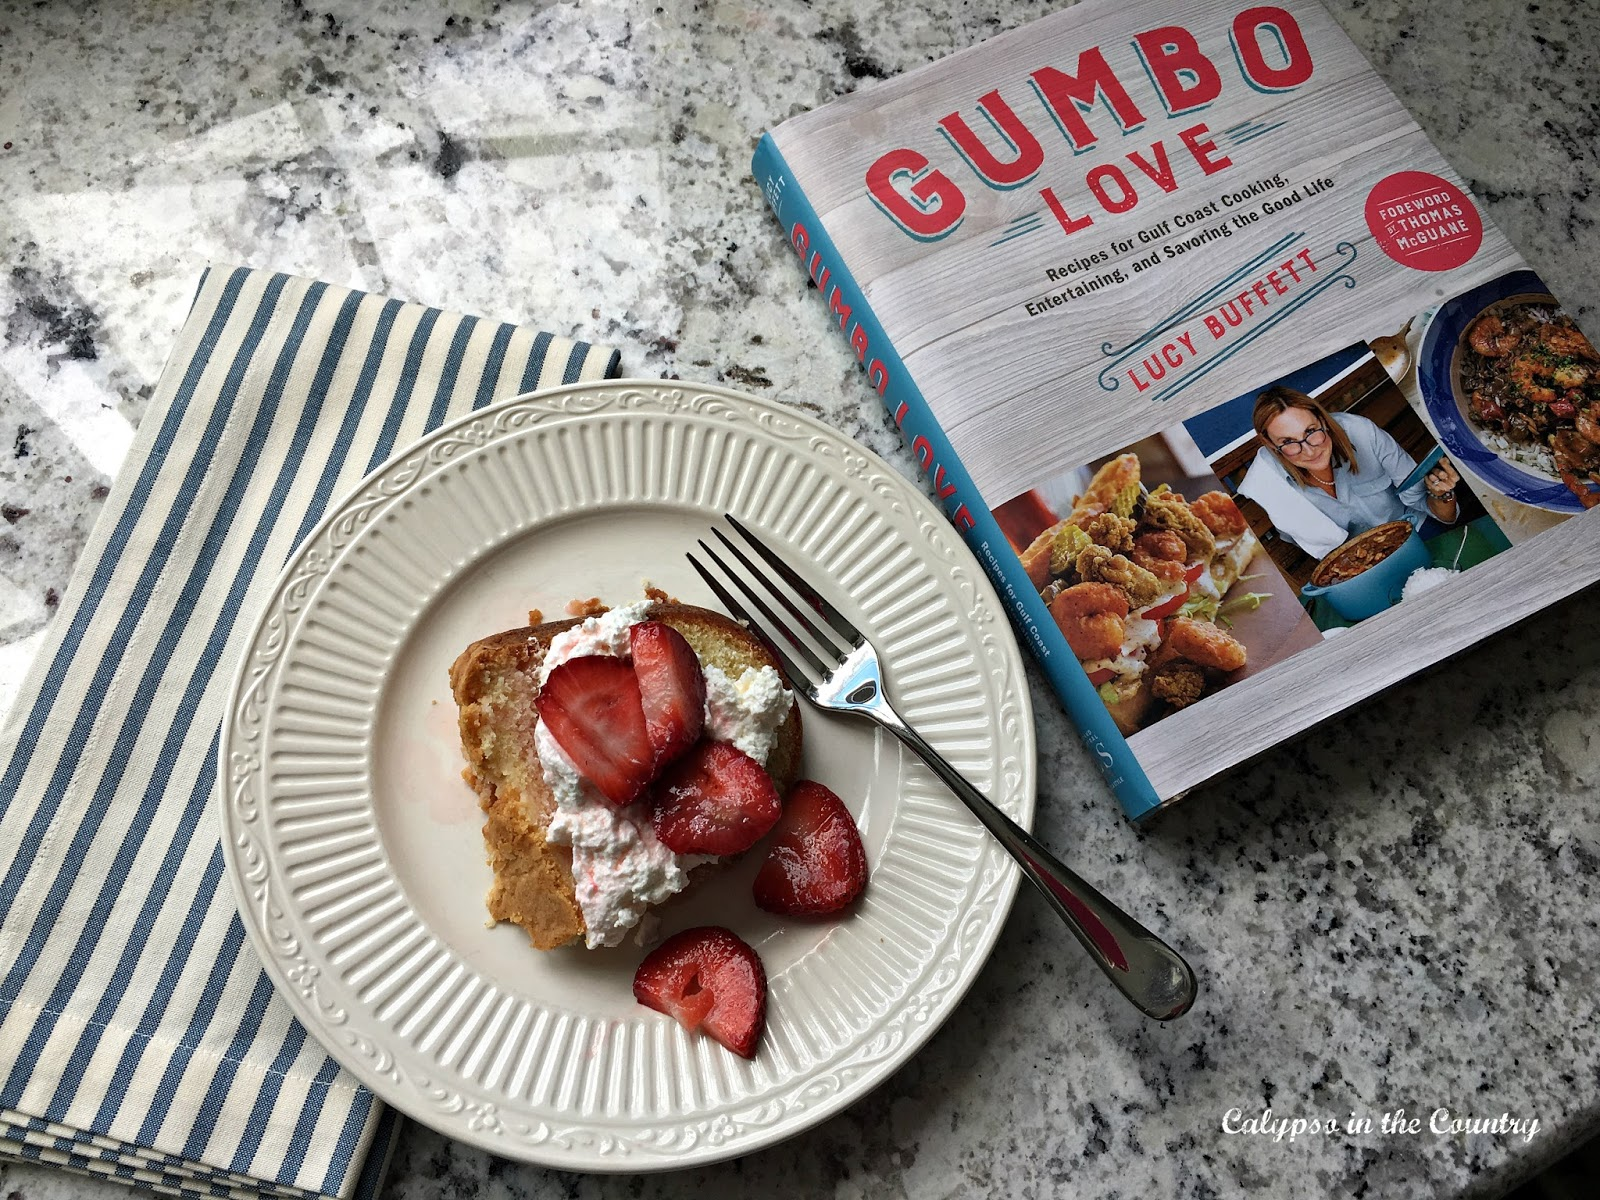 Gumbo Love Review - with a recipe from the book!